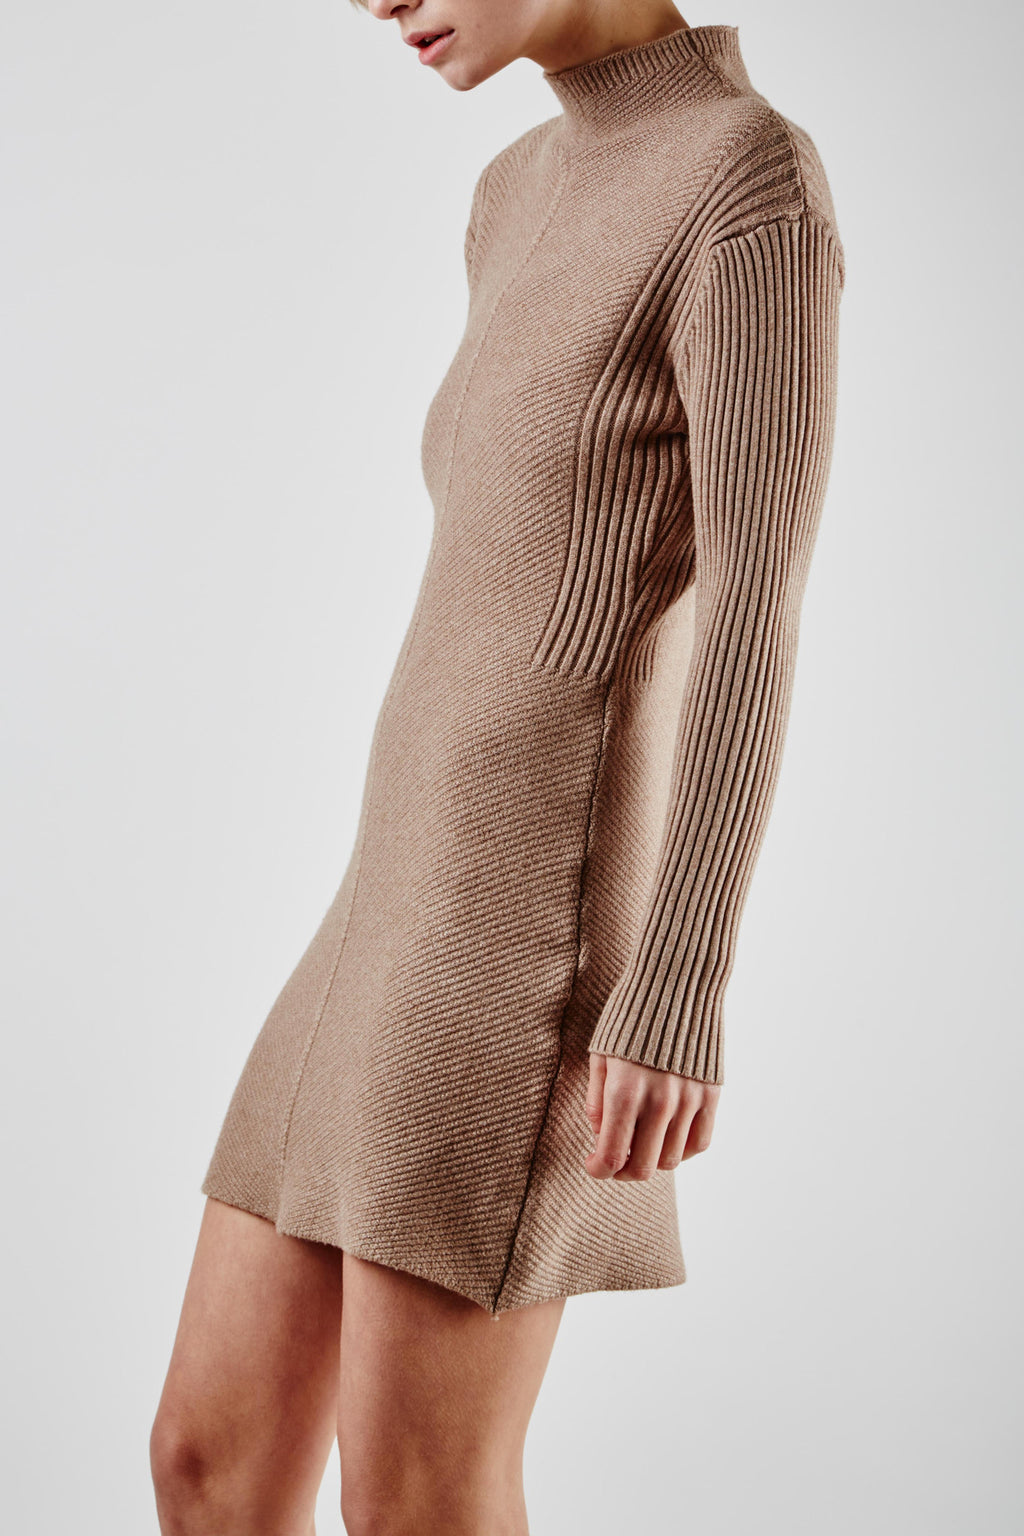 Belinda Knit Dress Beige